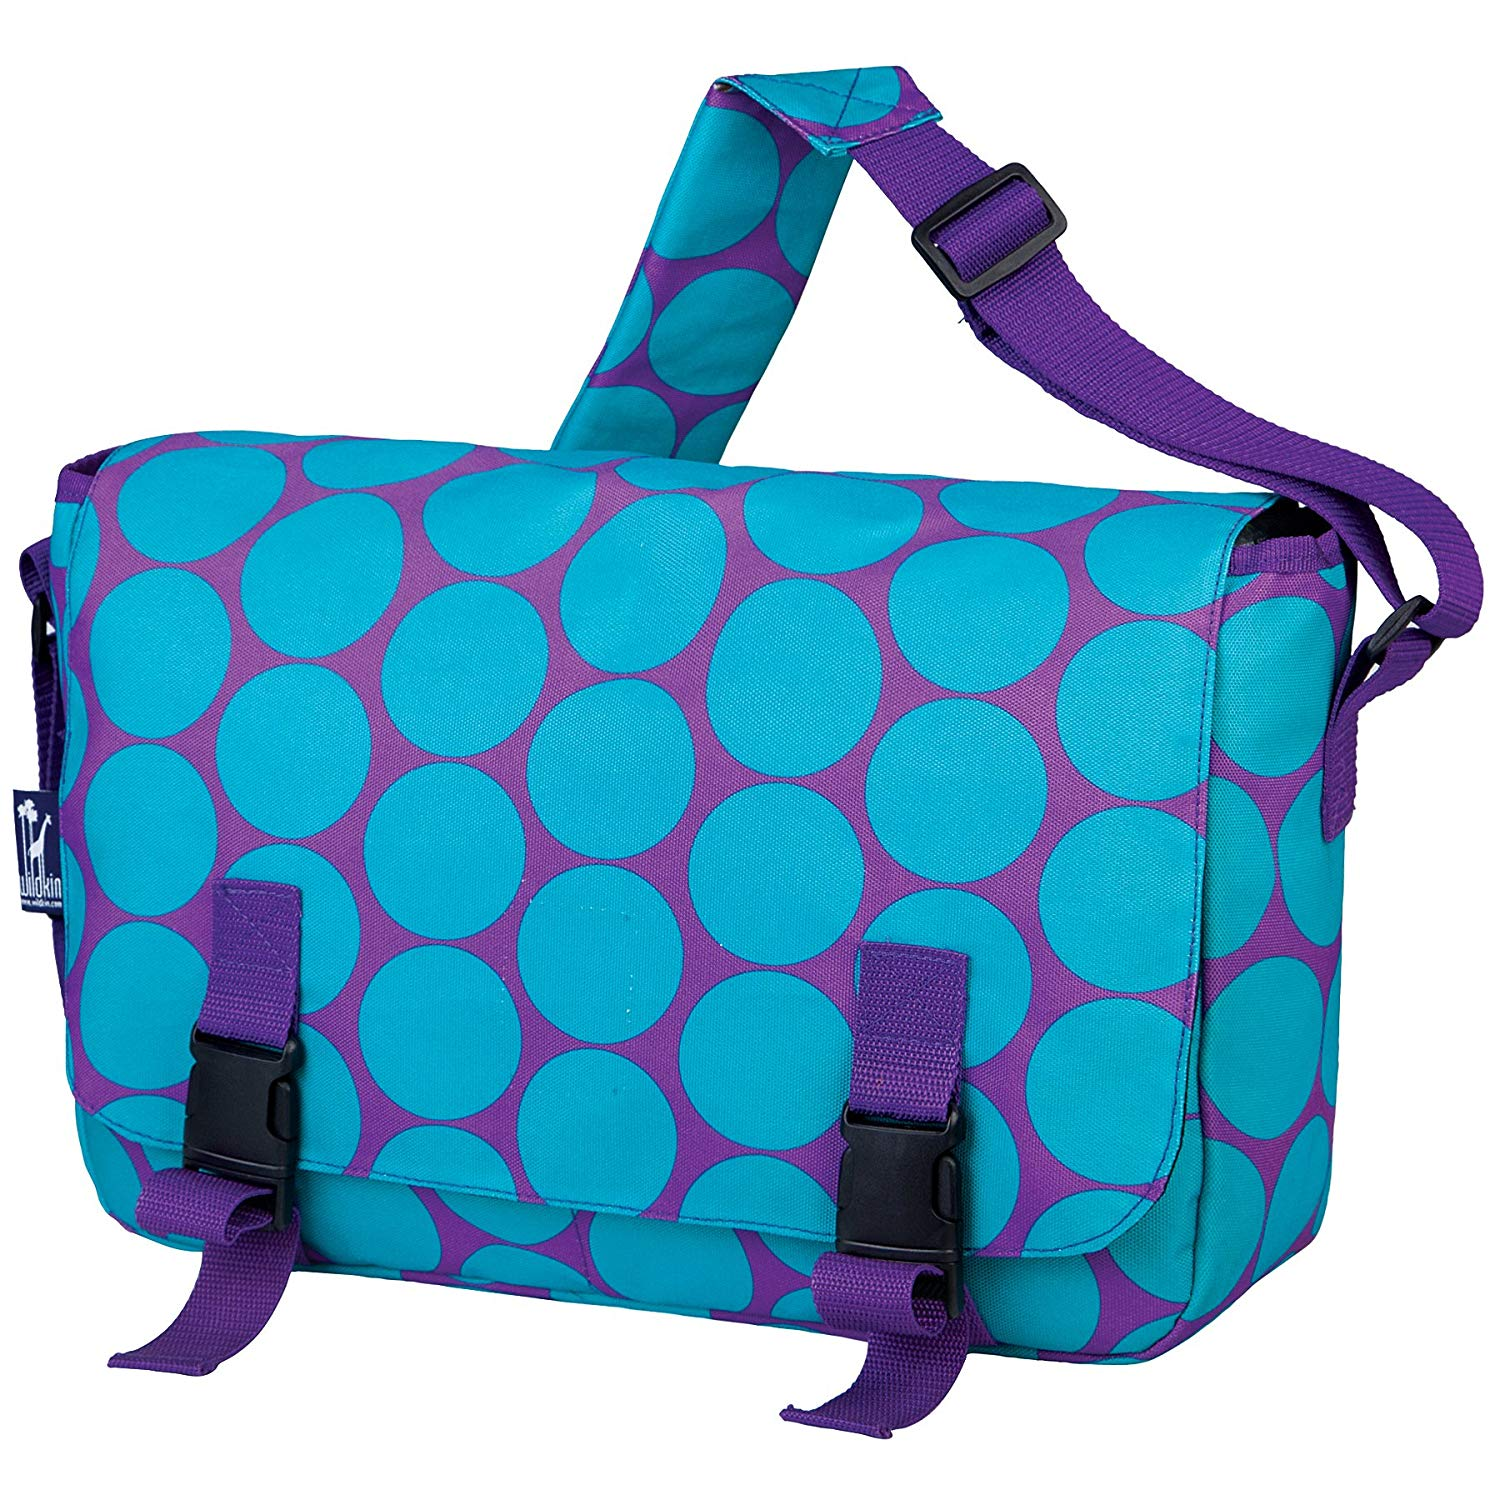 Wildkin Messenger Bag, 15 x 10 Inch Messenger Bag, Includes Interior and Exterior Pockets and Buckled Straps to Close, Ages 8+, Perfect for School, Sports, and Day Trips – Big Dot Aqua